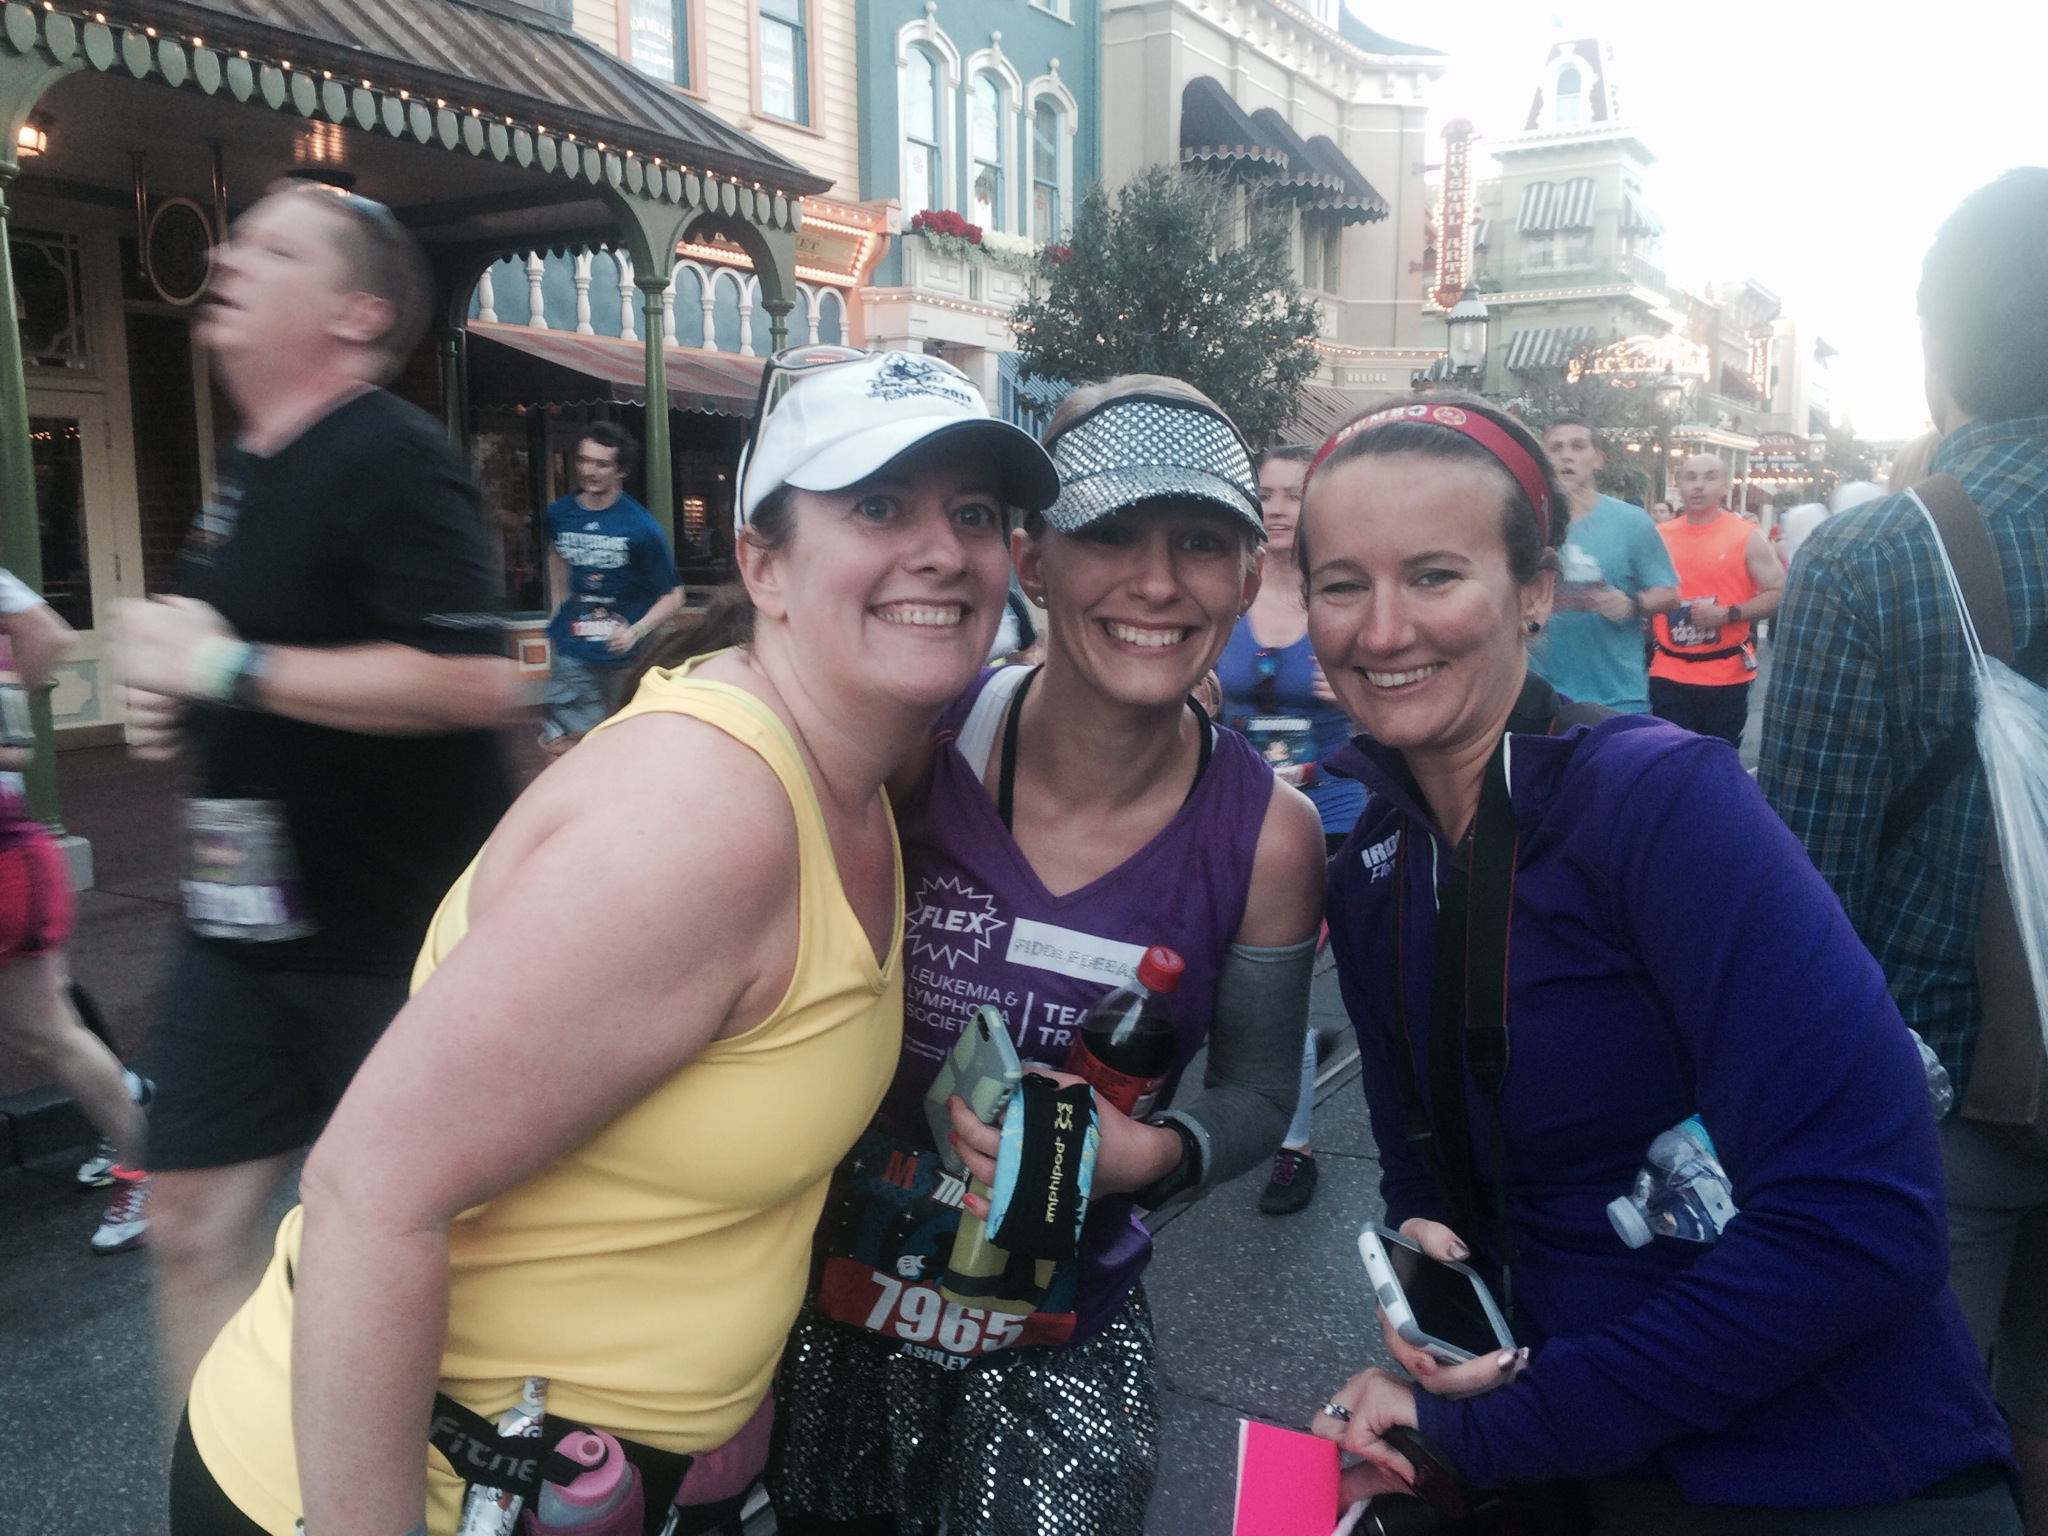 Inaugural 2014 Dopey Challenge Part 4 Walt Disney World